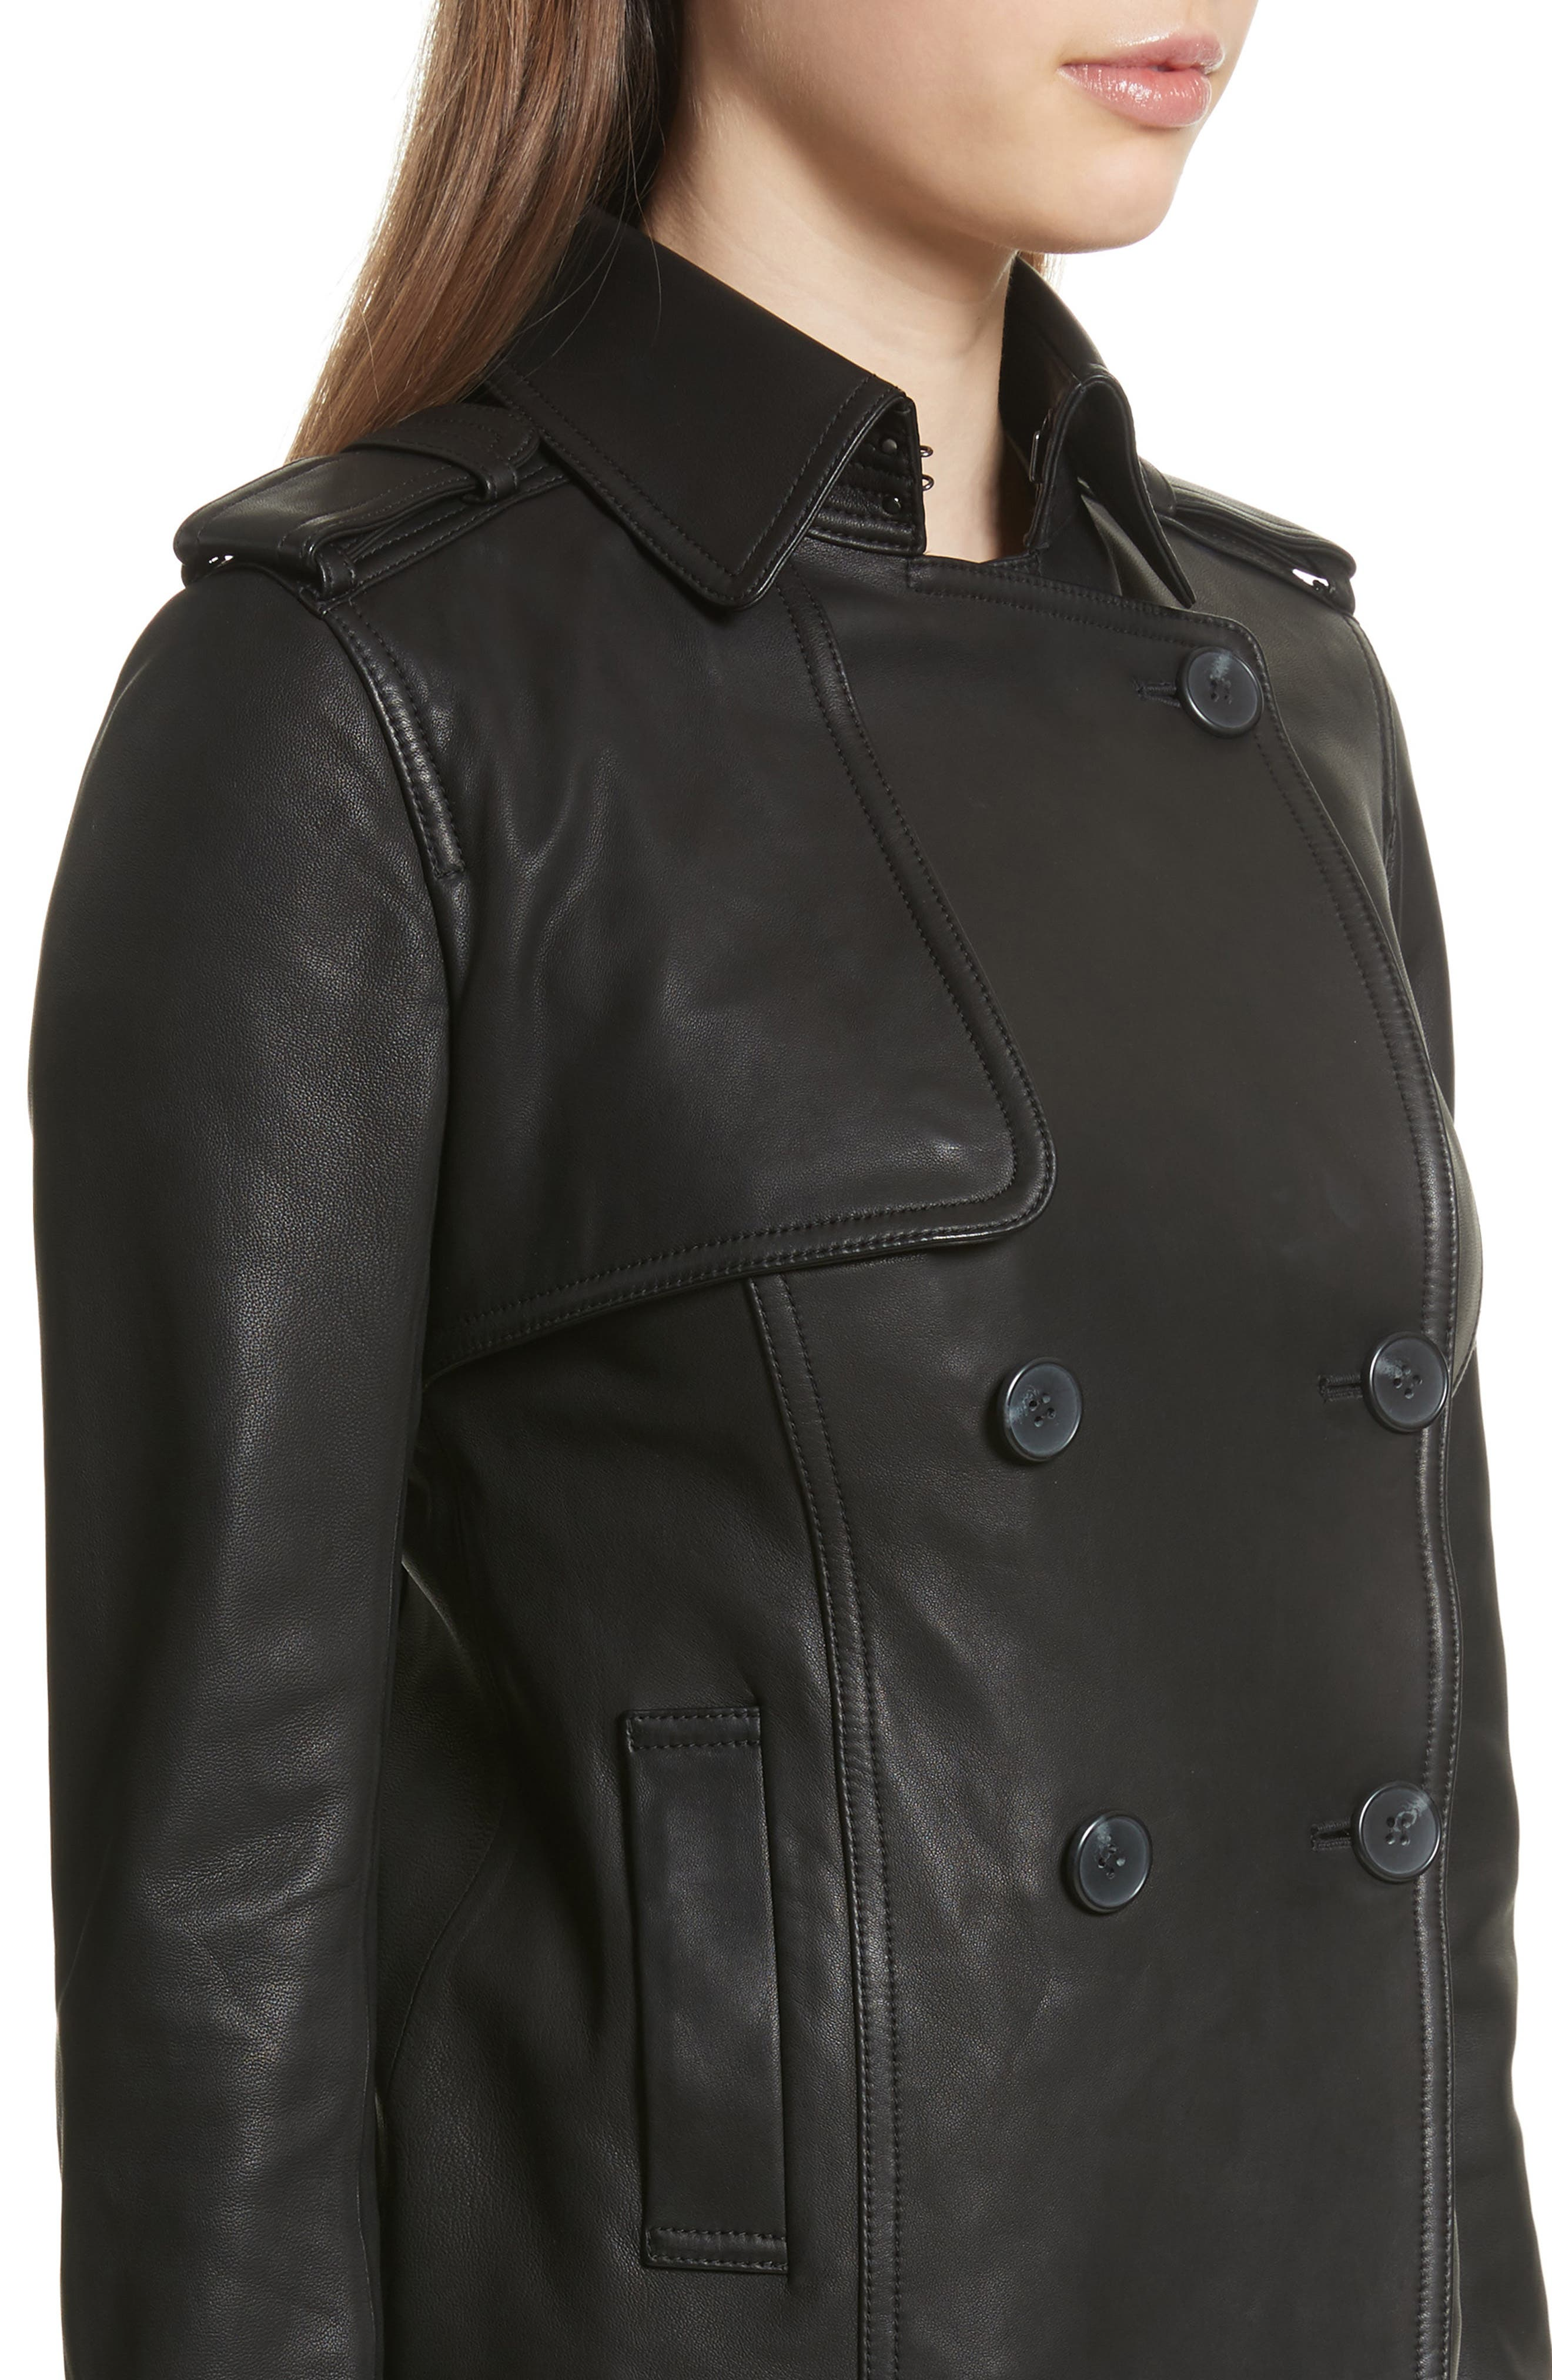 Crop Leather Trench Coat,                             Alternate thumbnail 4, color,                             001